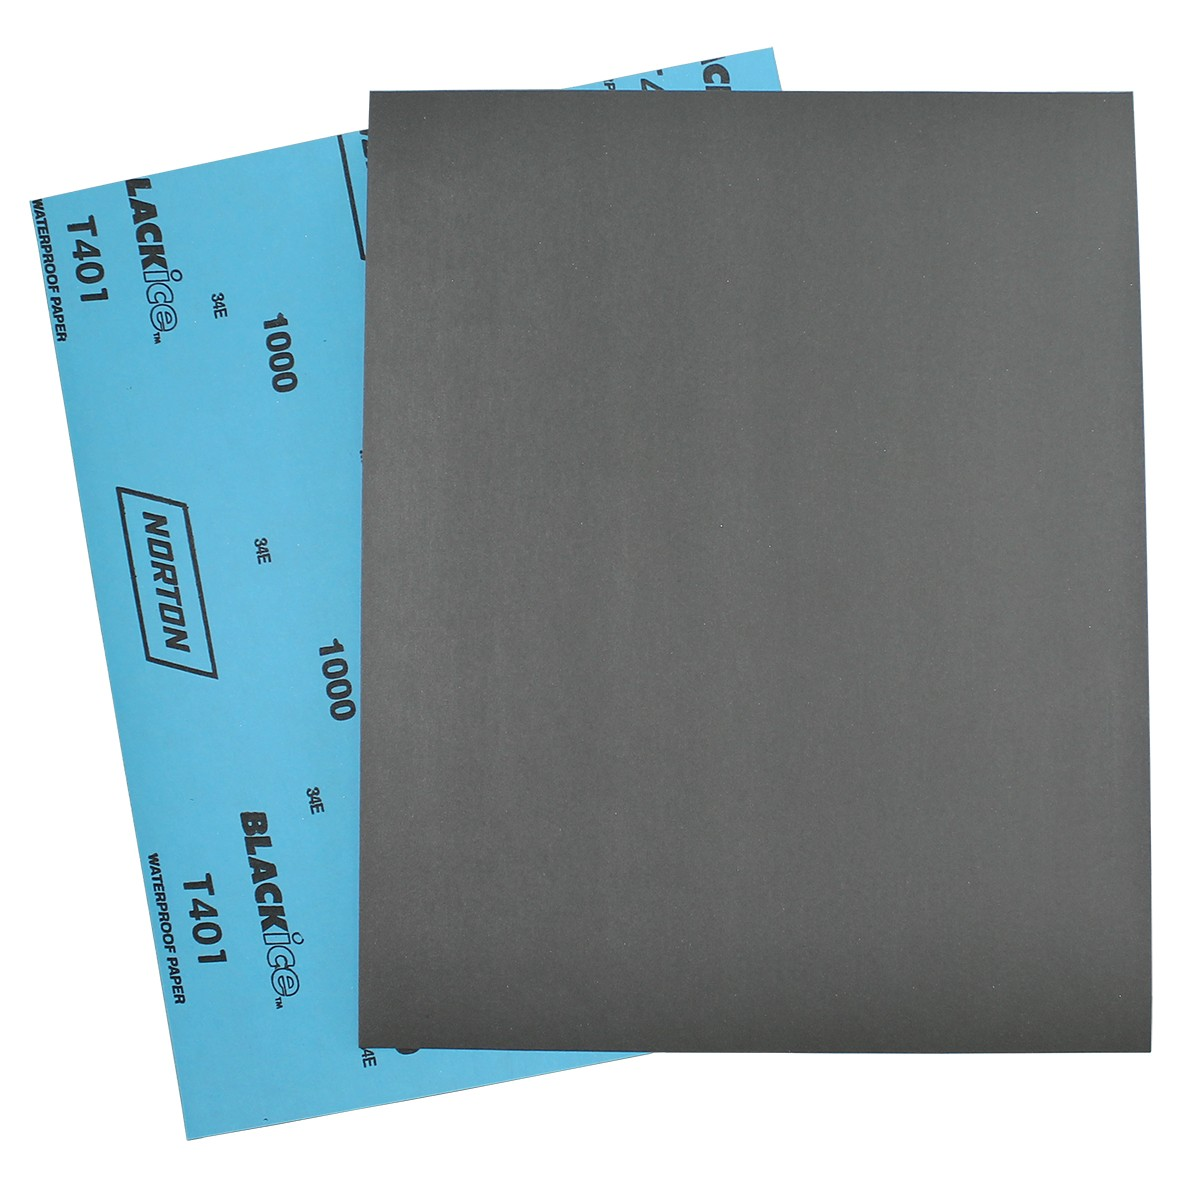 Norton Emery Polishing Paper - 280 Grit